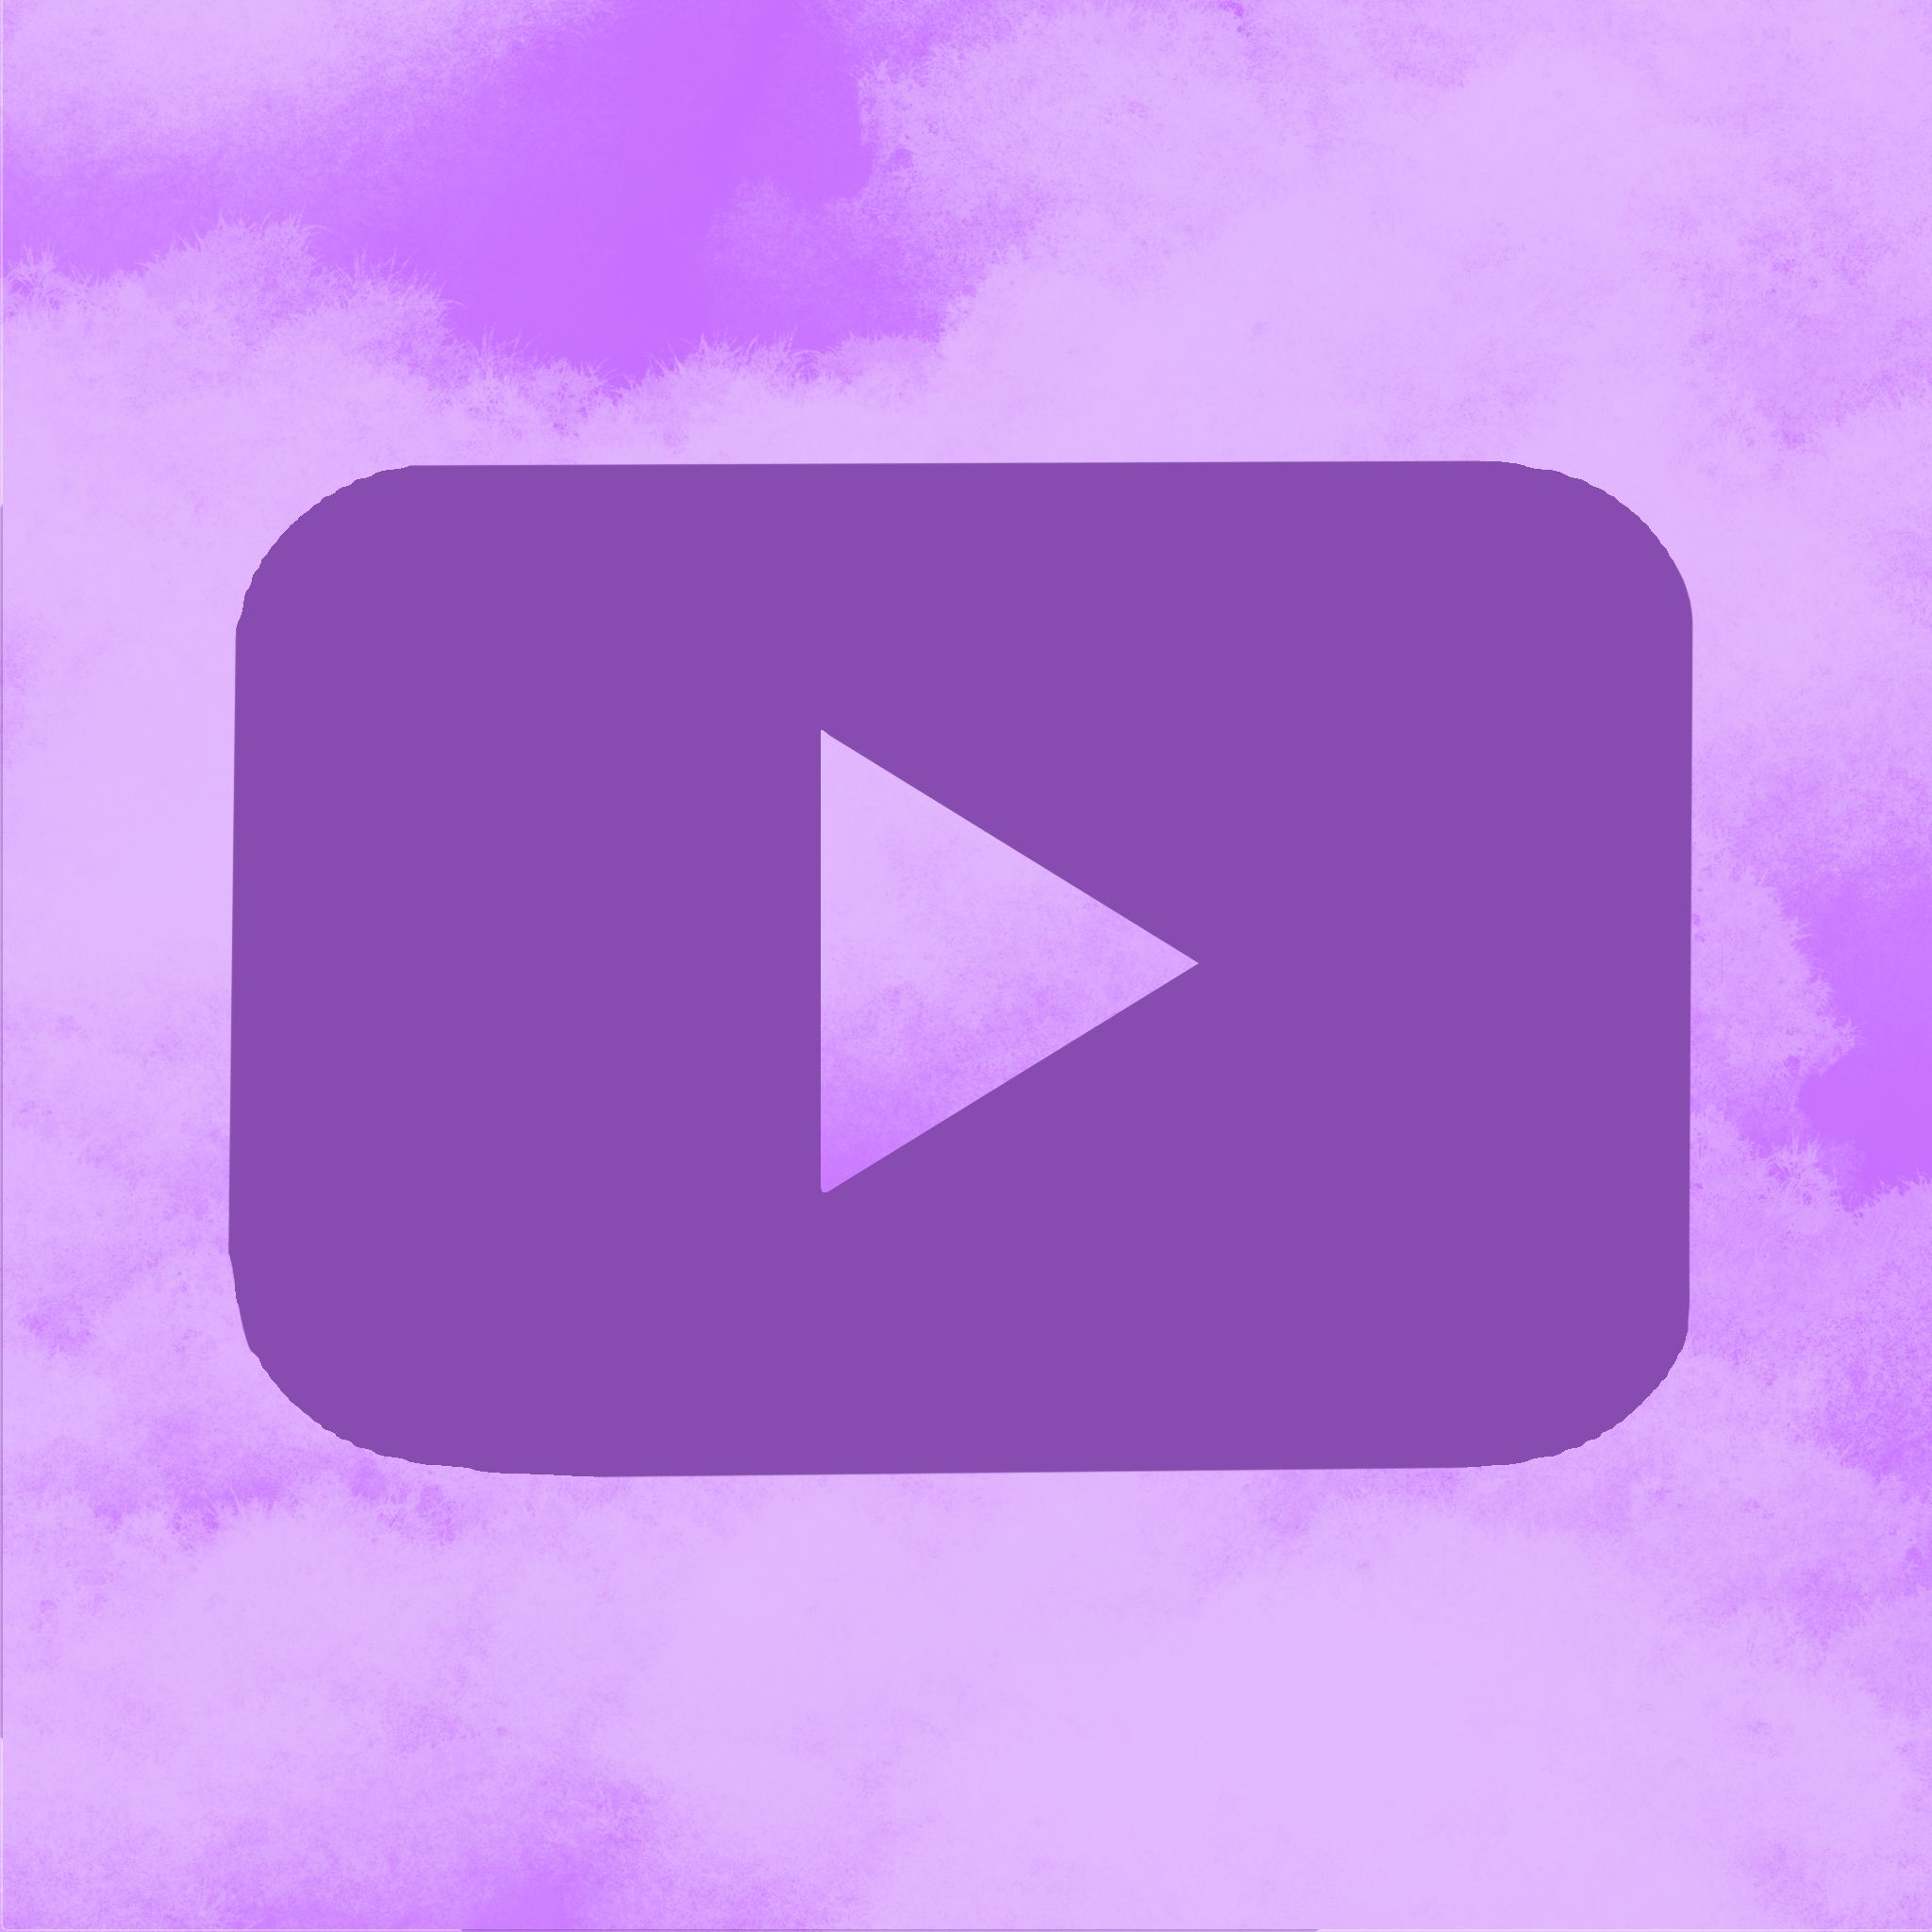 Purple Youtube Icon In 2020 Purple Wallpaper Iphone Dark Purple Aesthetic Iphone Icon